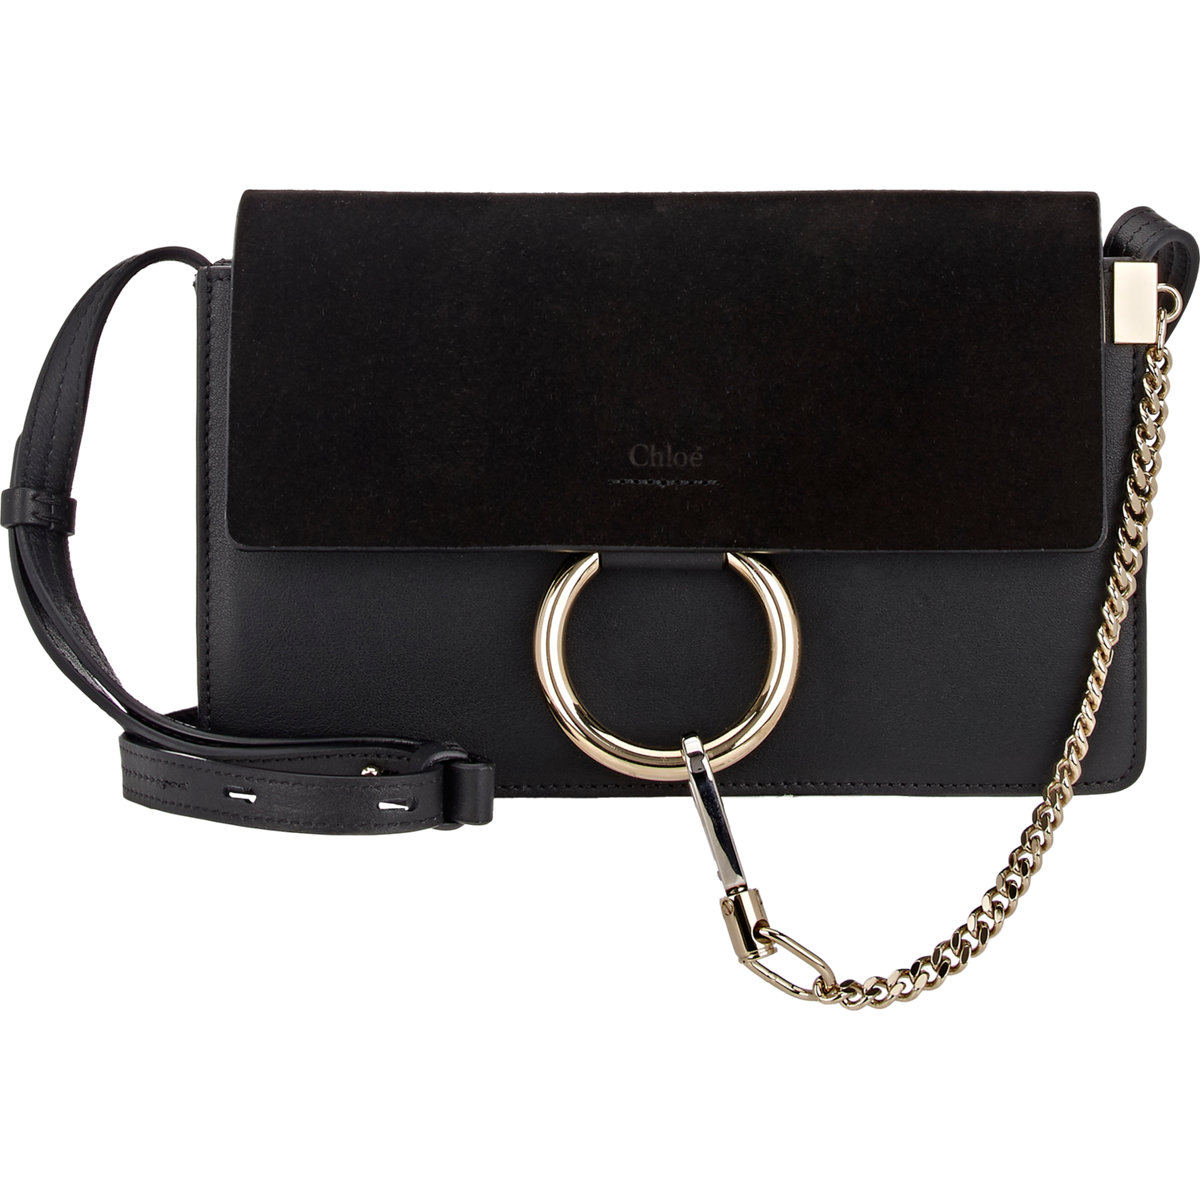 Chlo�� Faye Small Leather and Suede Shoulder Bag in Black | Lyst